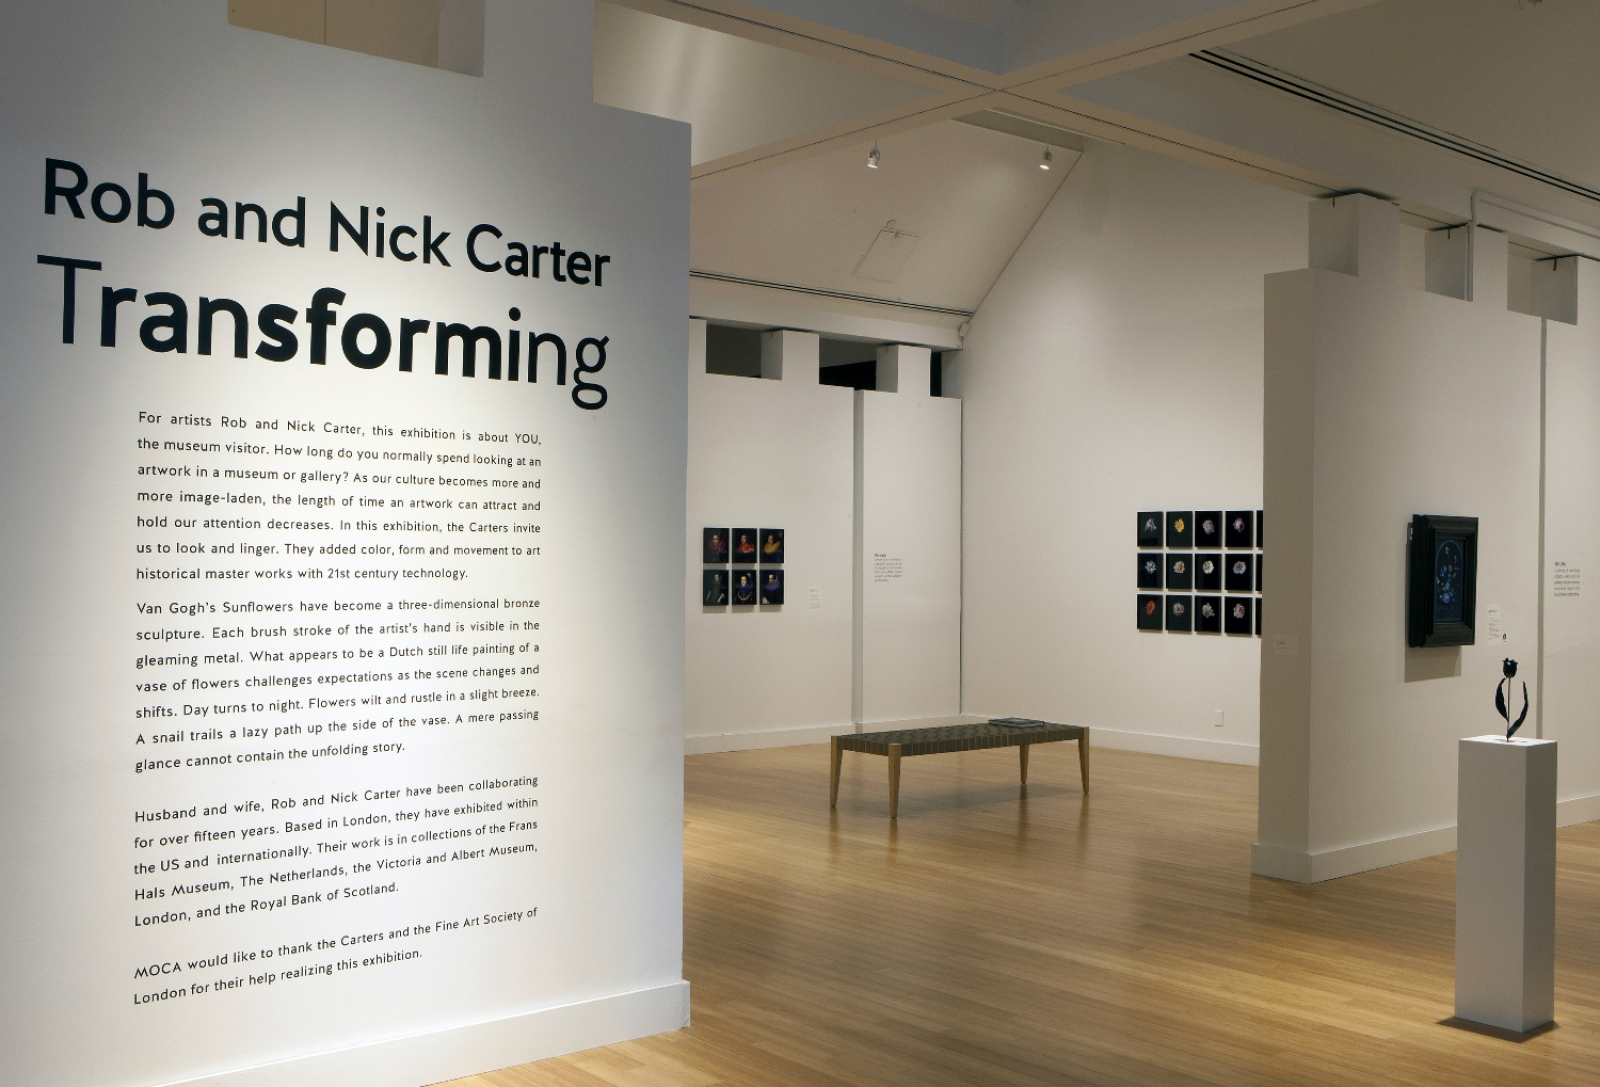 Rob and Nick Carter - Transforming, MOCA Virginia · © Copyright 2019